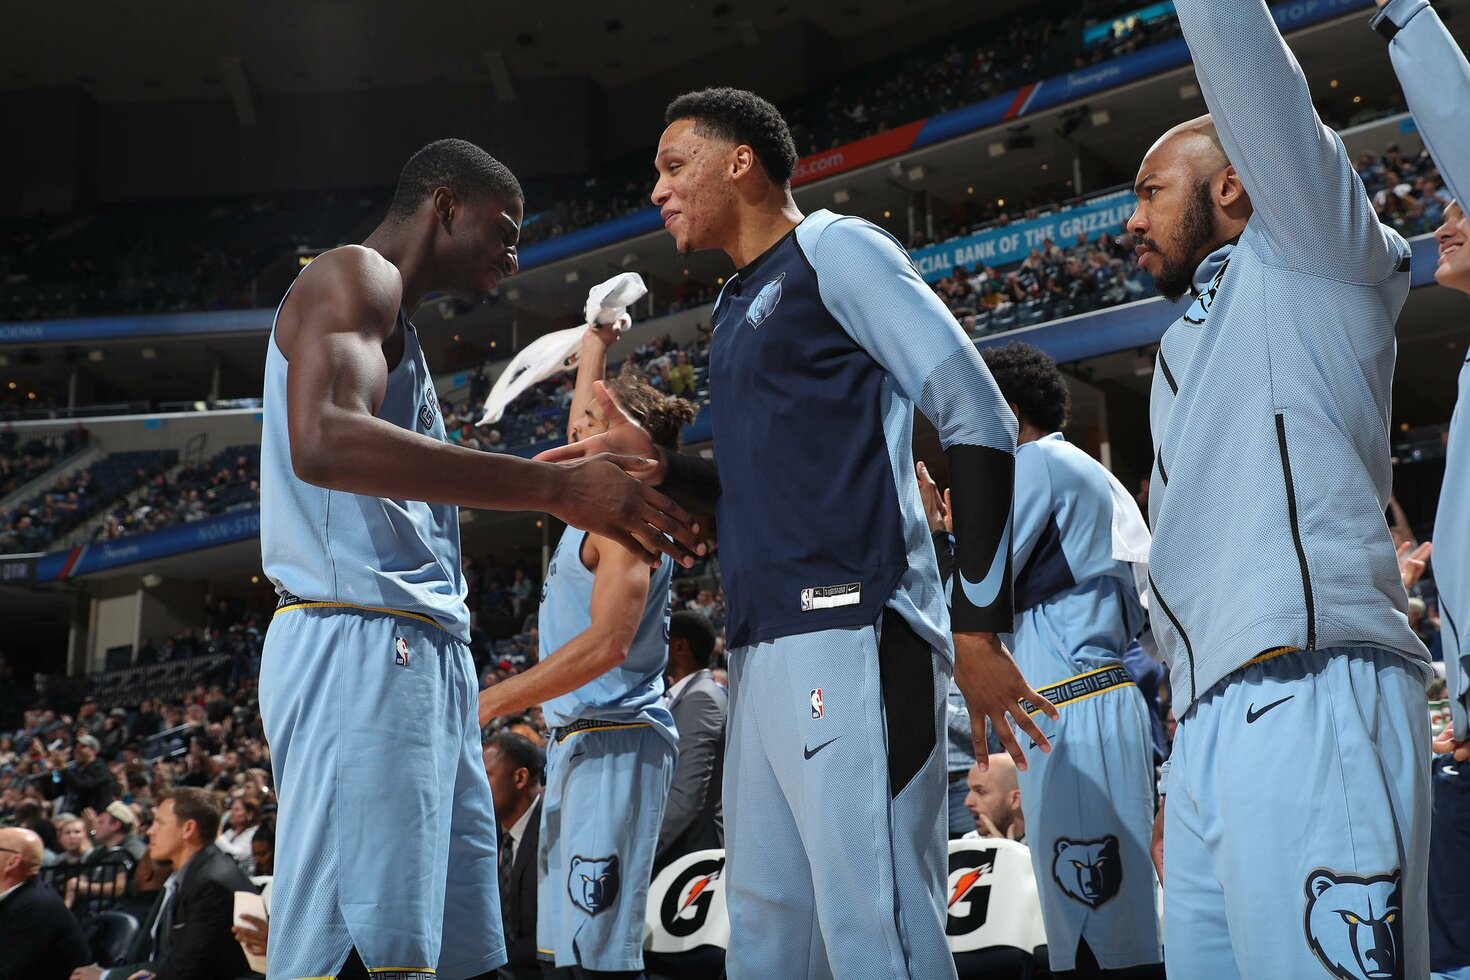 MEMPHIS, TN - JANUARY 9: Jaren Jackson Jr. #13 and Ivan Rabb #10 of the Memphis Grizzlies react during a game against the San Antonio Spurs on January 9, 2019 at FedExForum in Memphis, Tennessee.